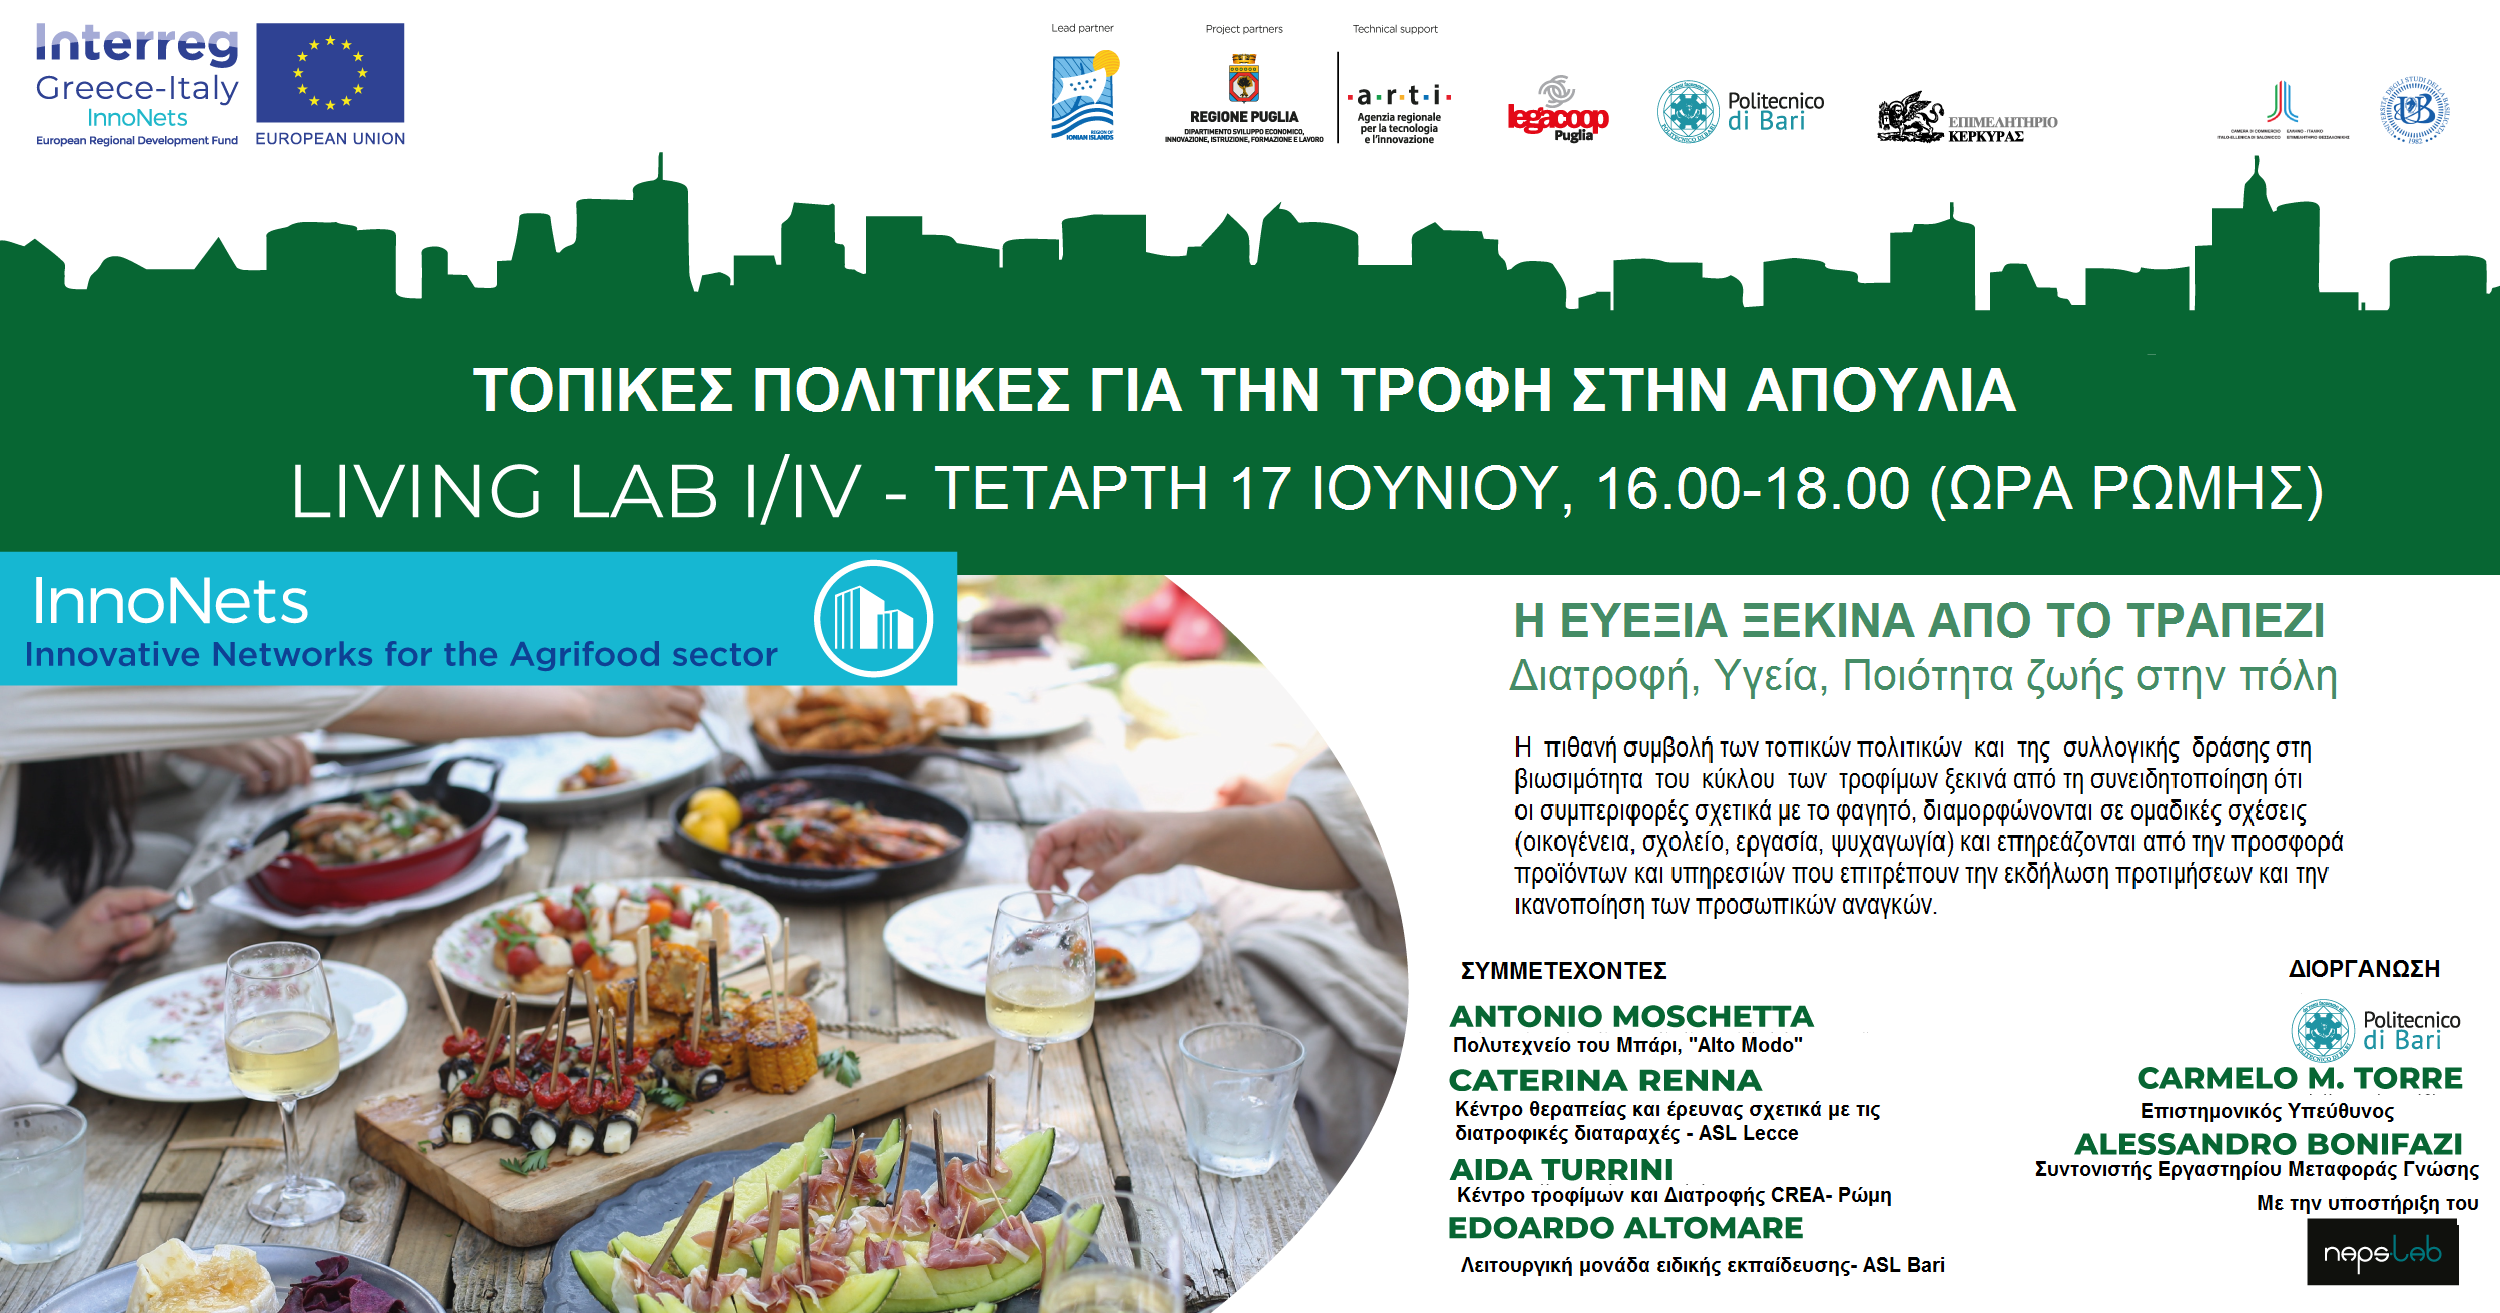 Wellness Begins At The Table On June 17 The First Of The Four Meetings And Living Lab Organized By Polytechnic Of Bari For The Innonets Project Innonets Interreg